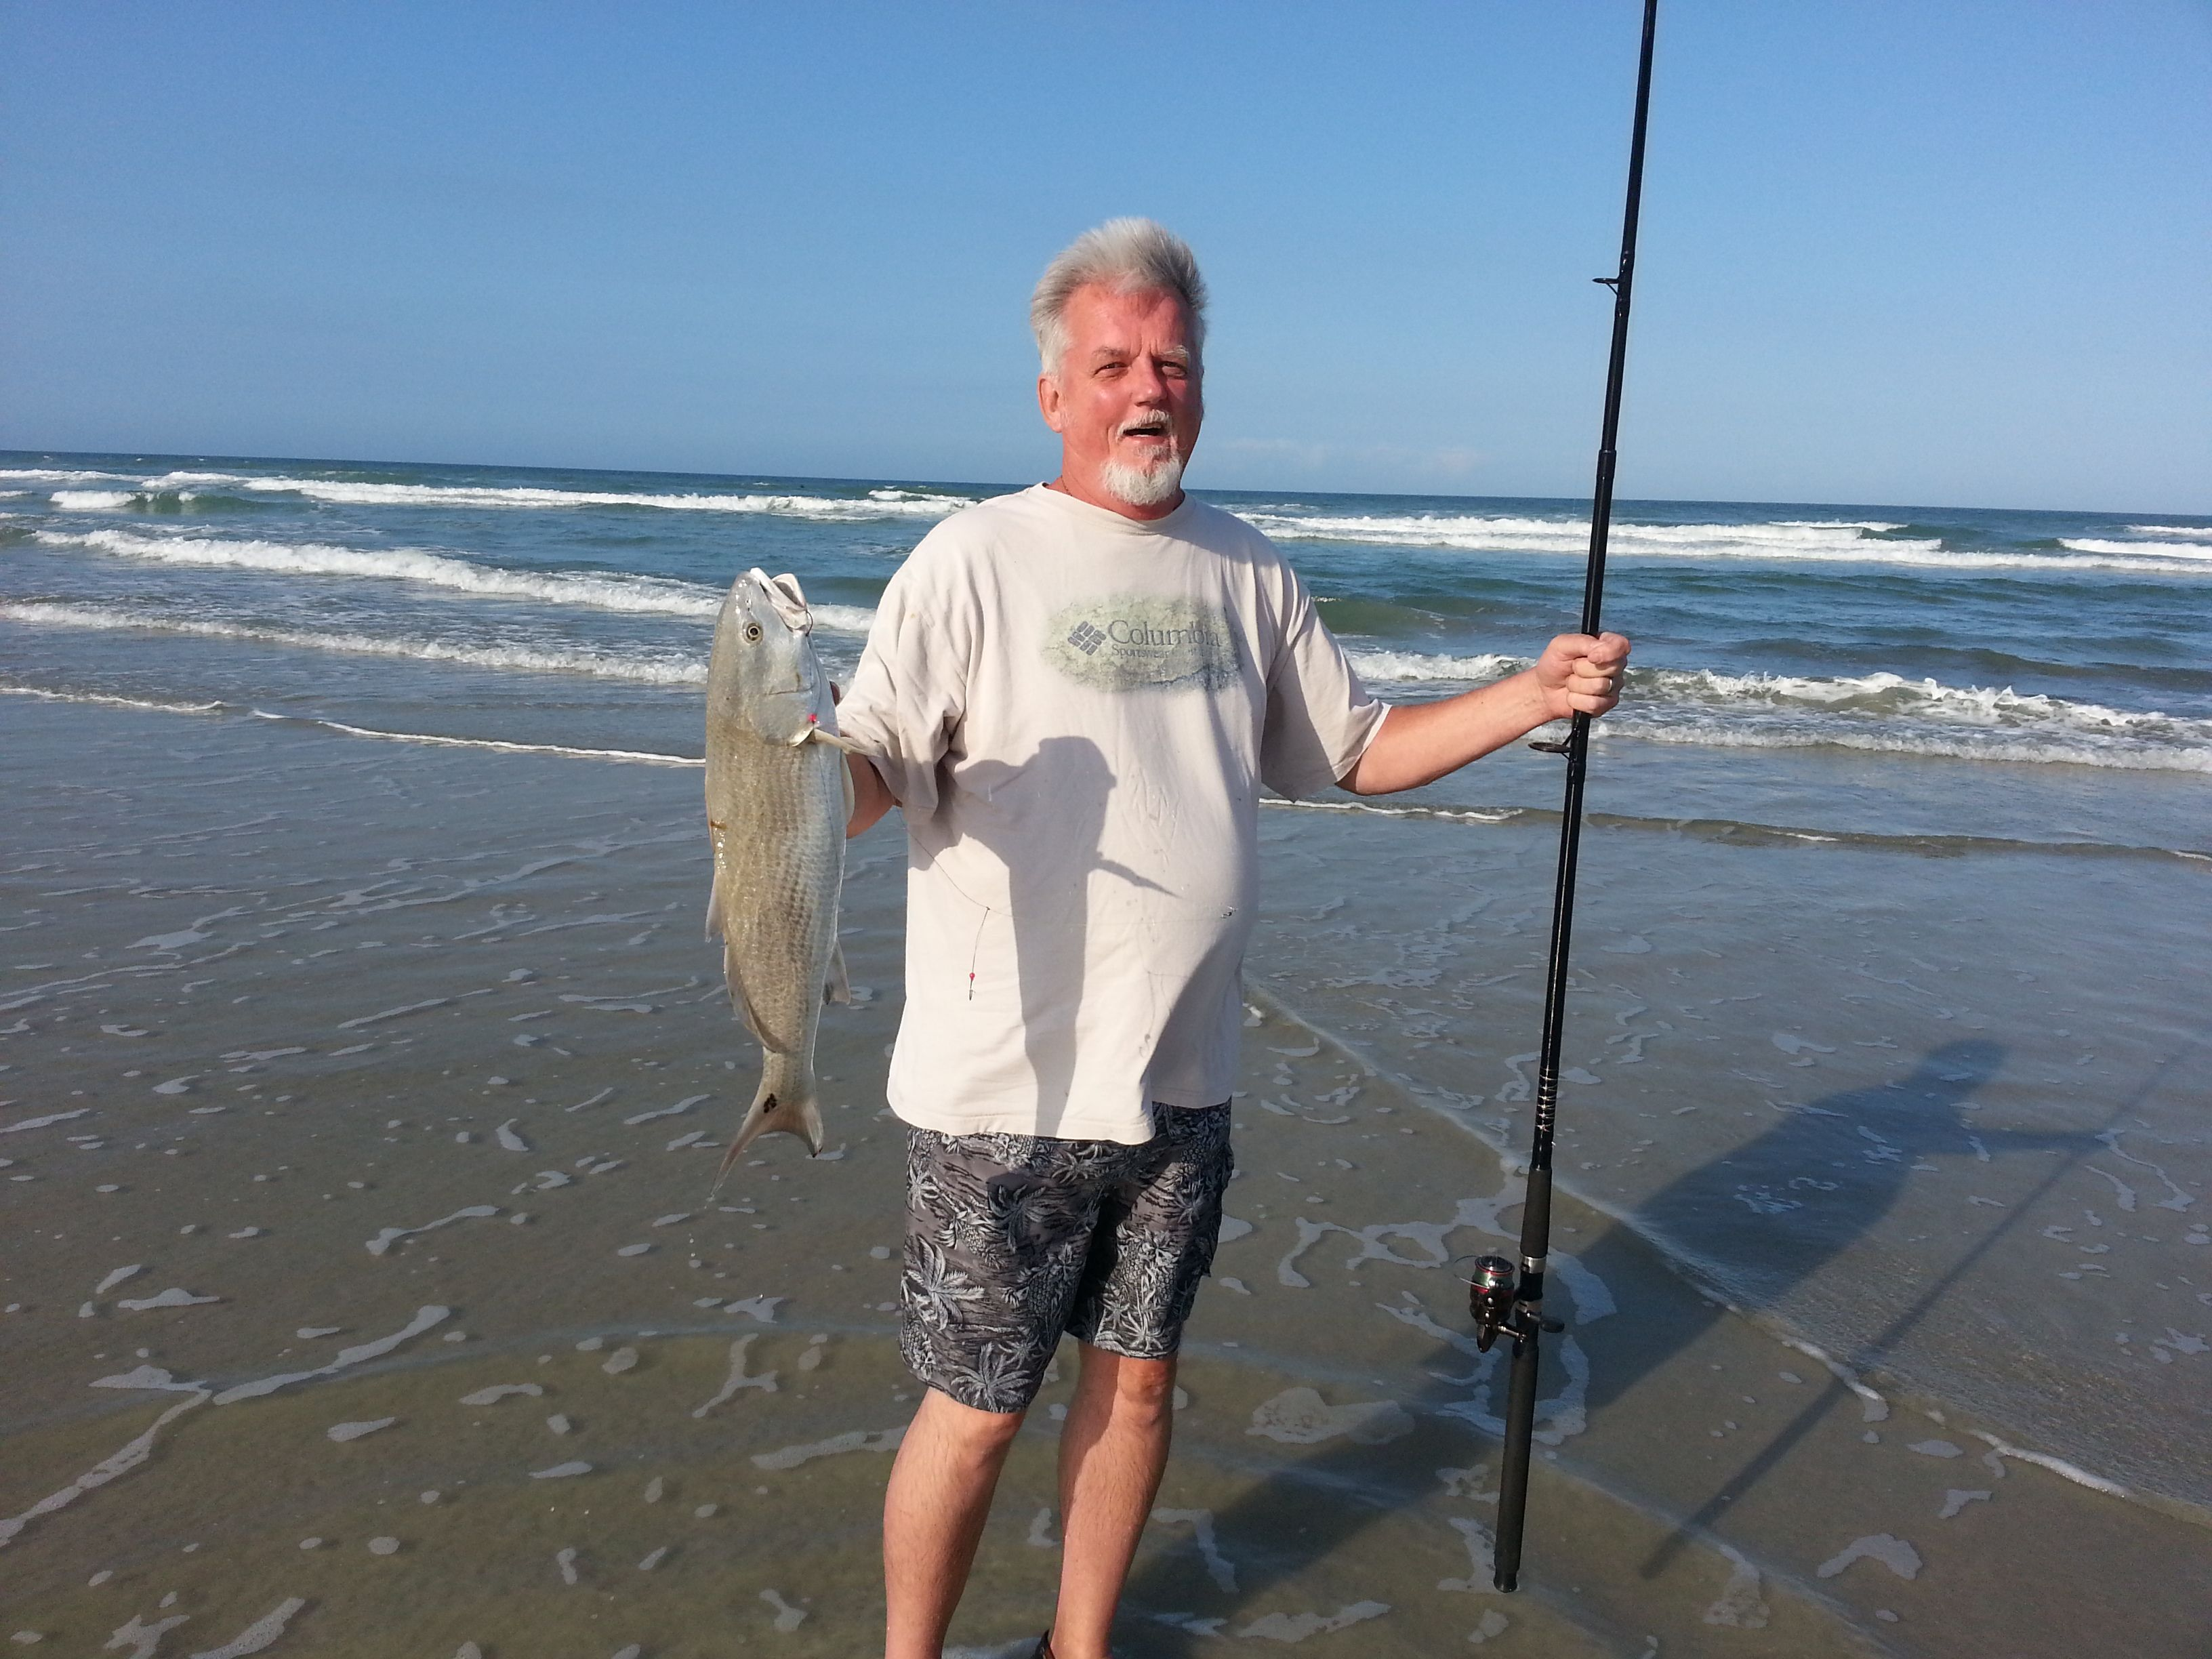 Surf Fishing New Smyrna Beach Florida